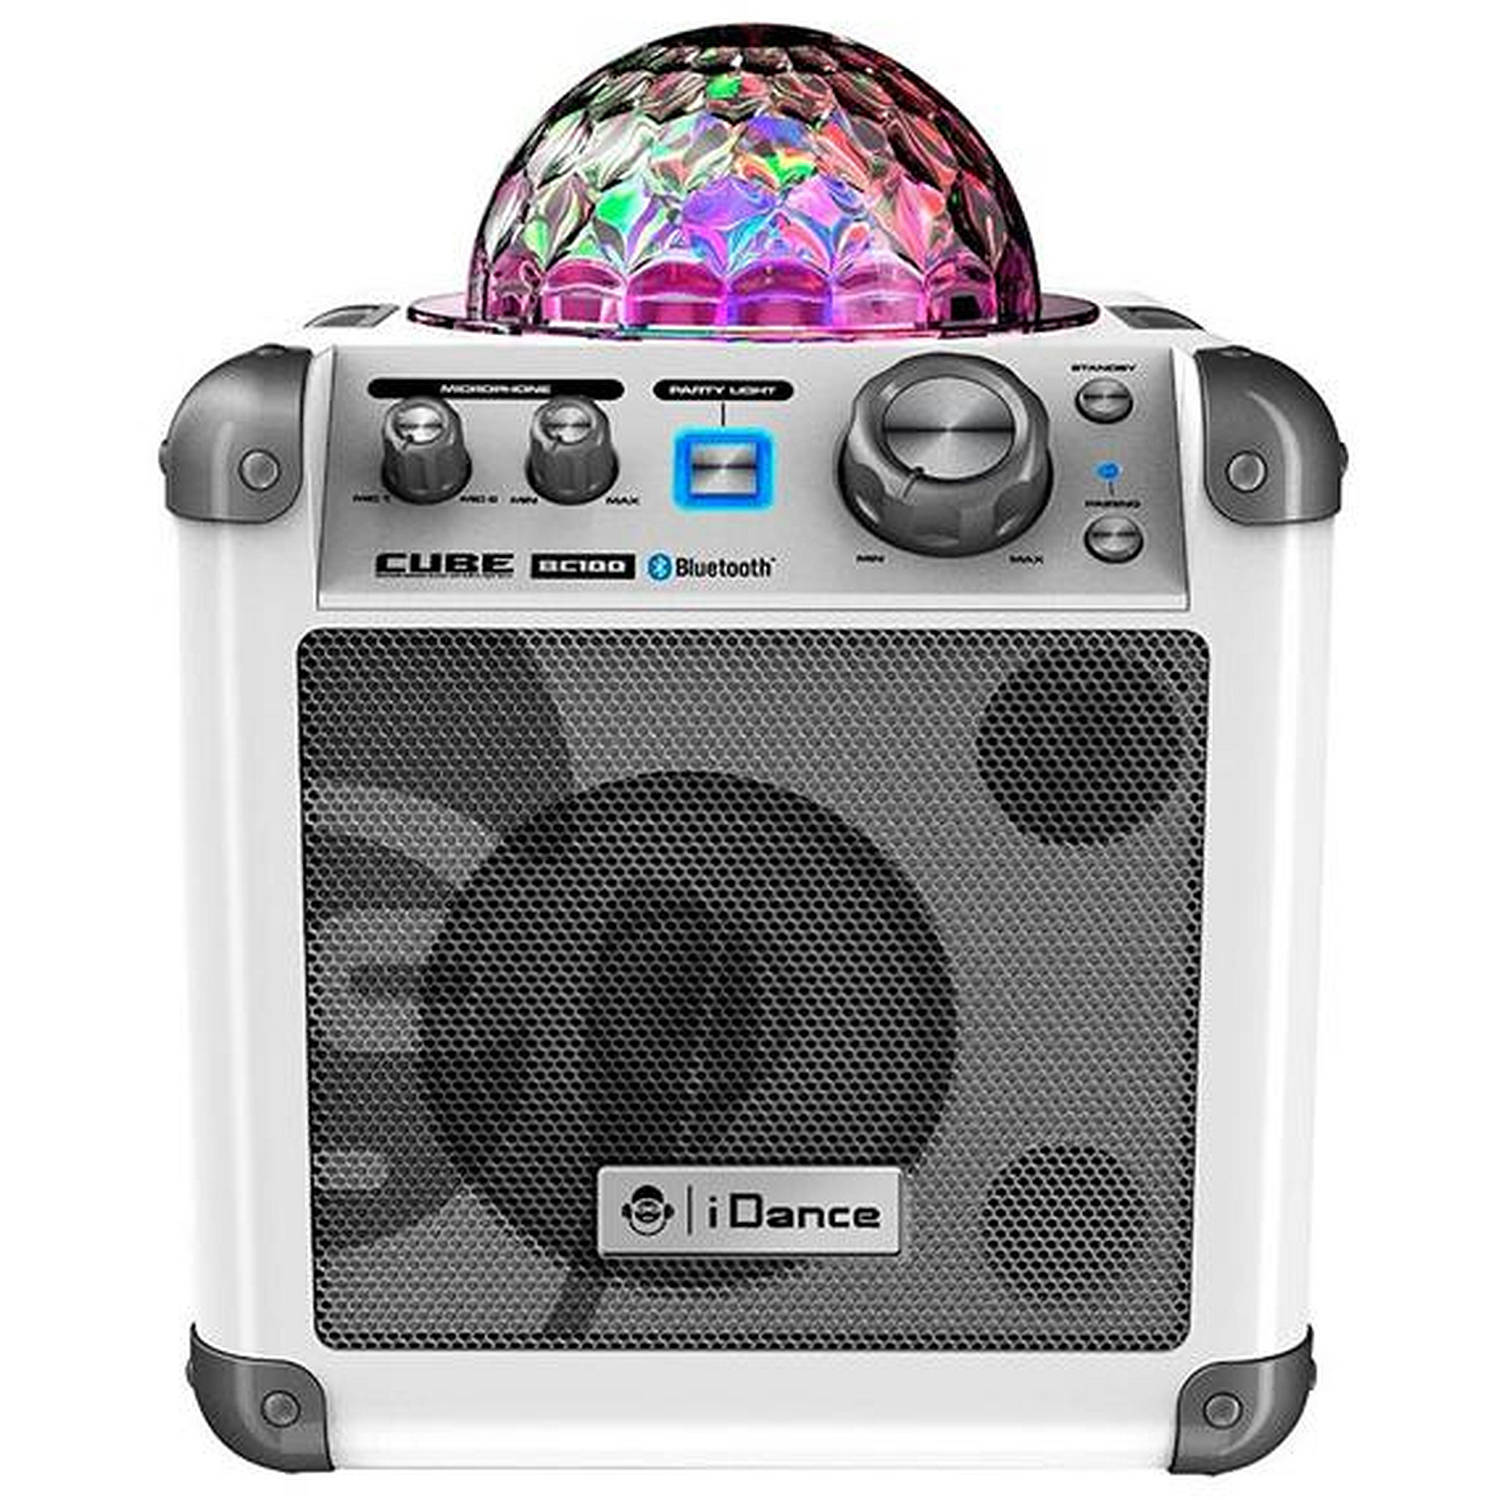 Britelite - iDance BC-100 WH Sing Cube Bluetooth Karaoke System with Built-in Light Show (White)